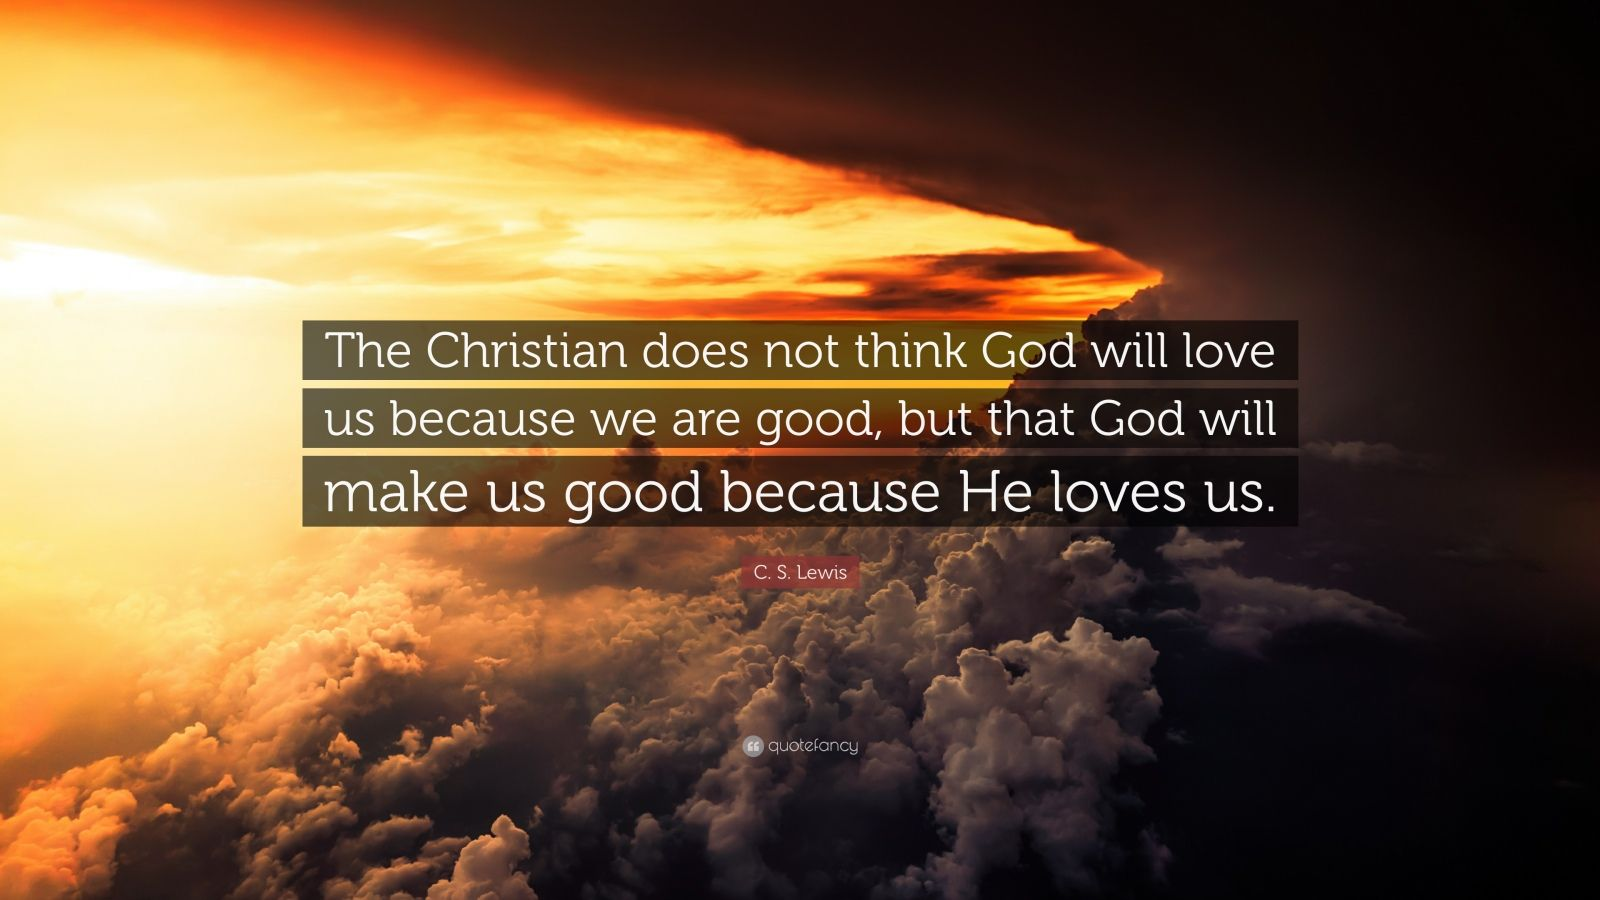 """C. S. Lewis Quote: """"The Christian does not think God will love us because we are good, but that God will make us good because He loves us."""""""